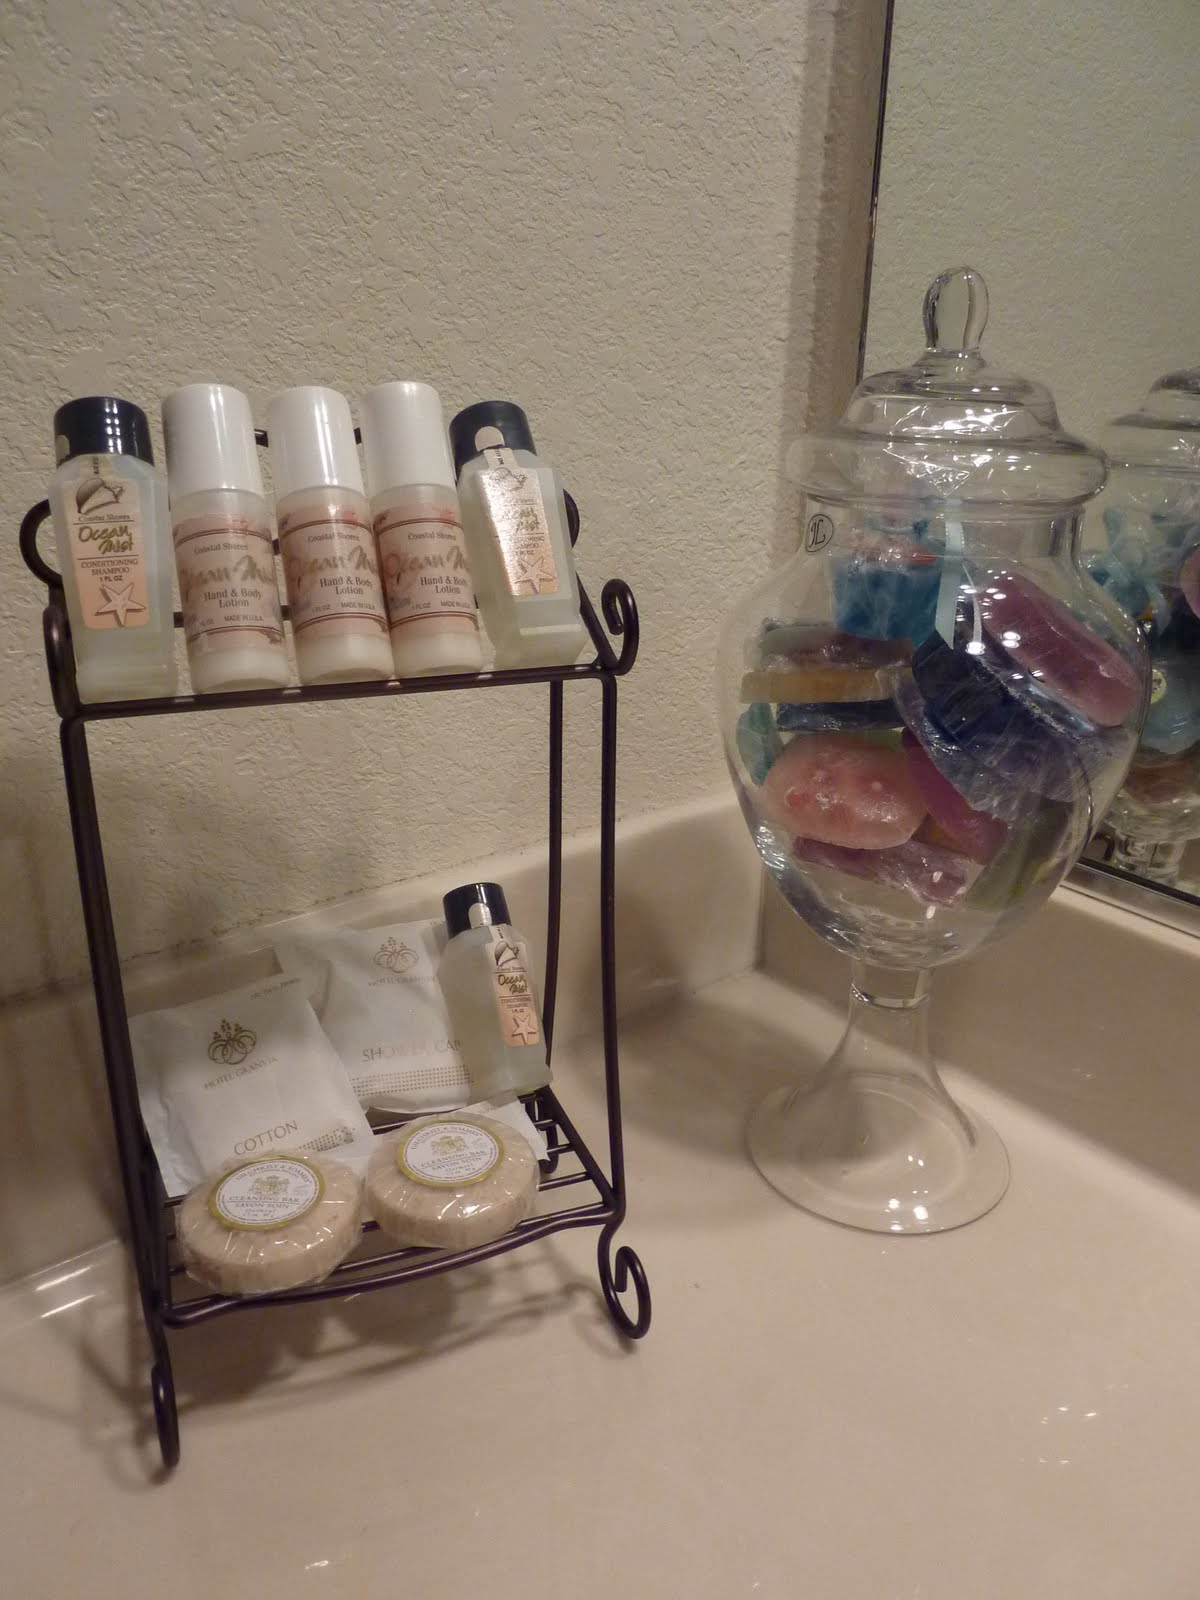 Trace my footsteps: Guest Toiletries Display